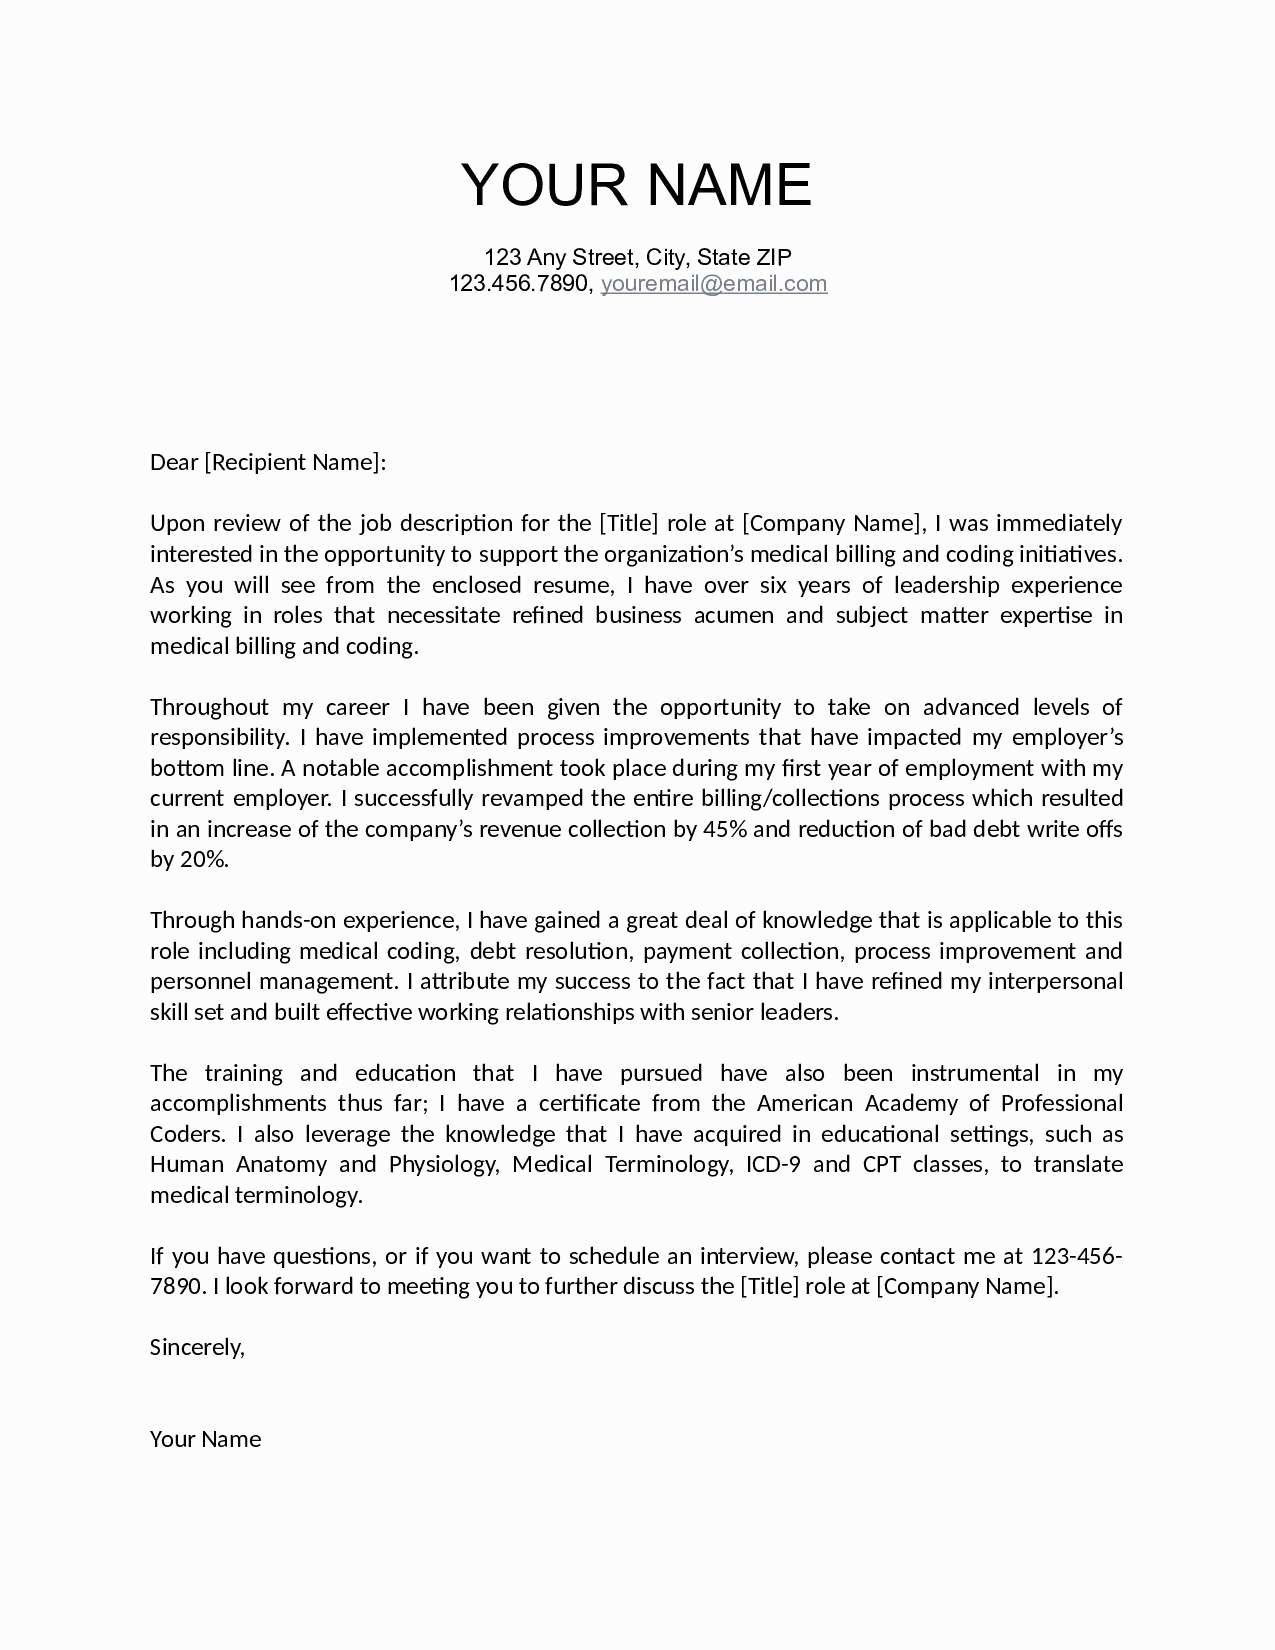 Letter Of Employment Template - Cover Letter for Oil and Gas Job Save Lovely Job Fer Letter Template